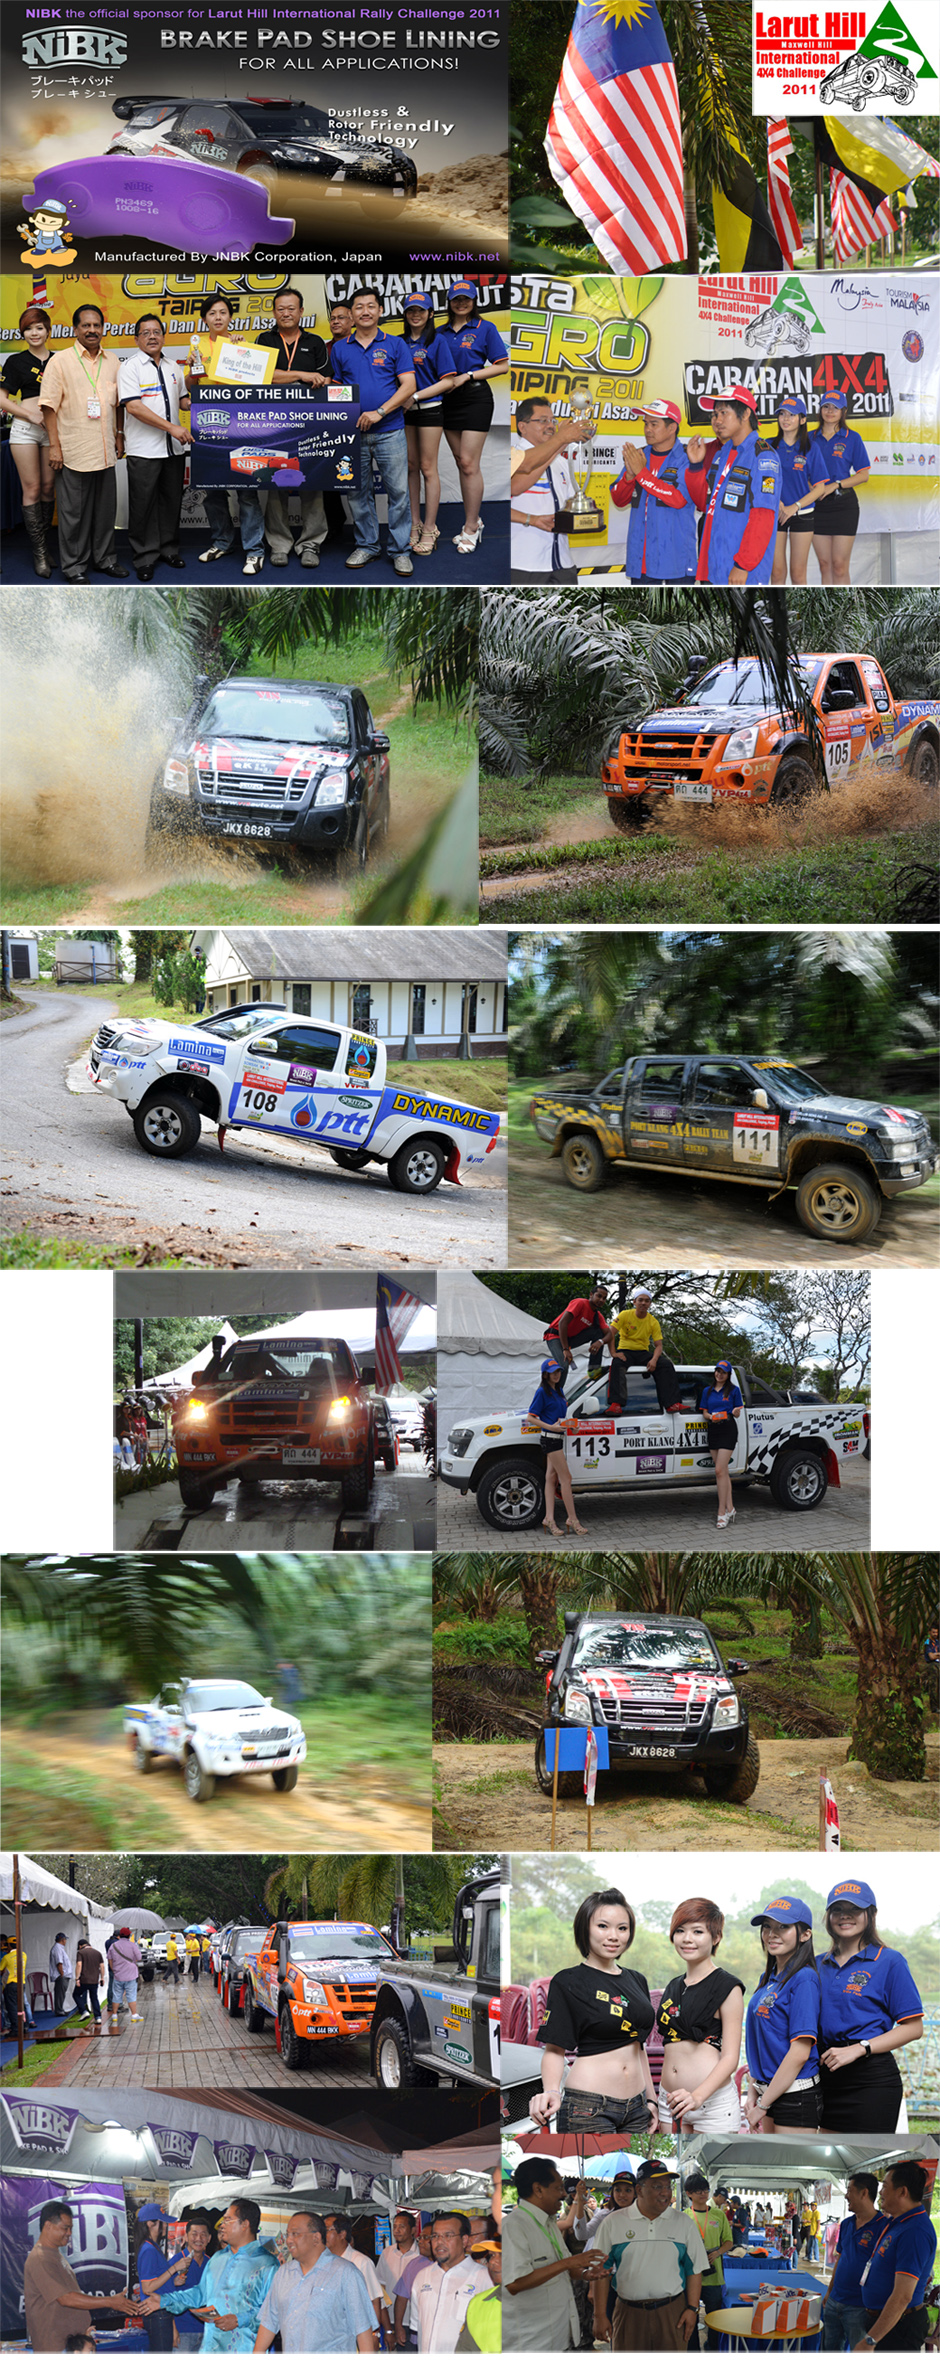 NiBK official sponsor for larut hill international rally 4x4 challenge 2011